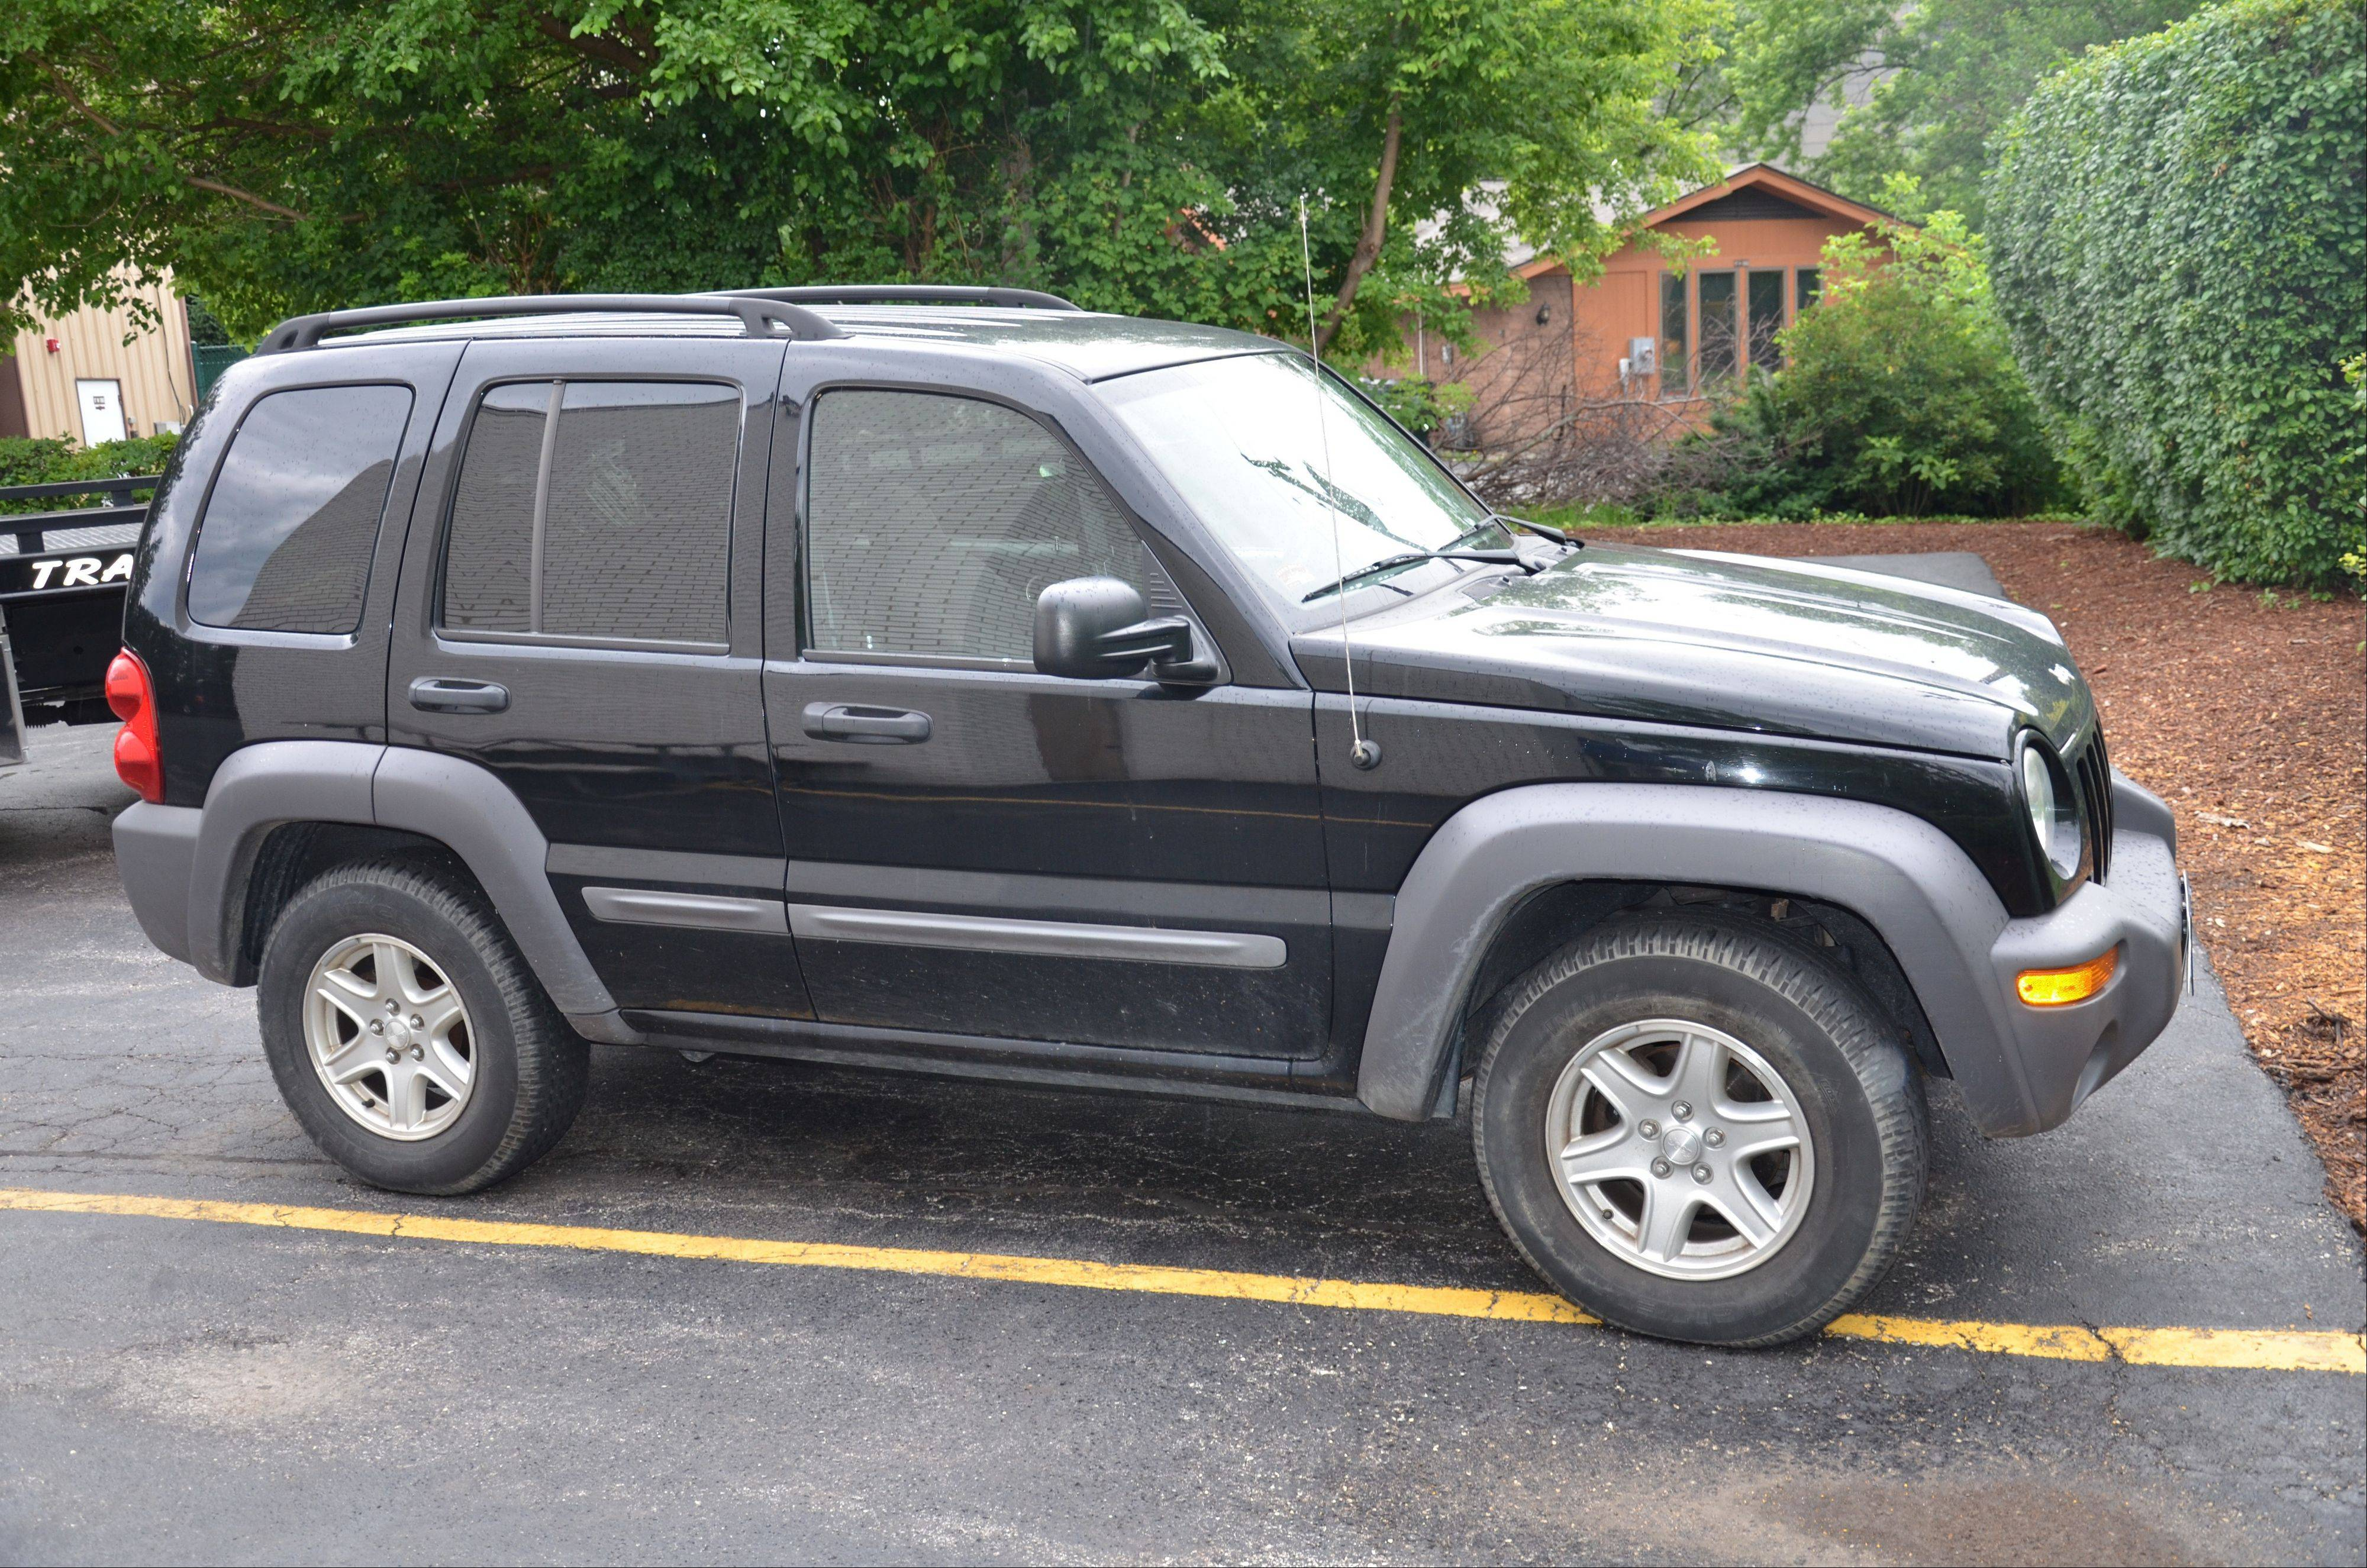 Police believe this Jeep Liberty was stolen by three men who tried to rob a jewelry store Sunday at Oakbrook Center mall in Oak Brook. Police found the vehicle abandoned less than a half-mile from the mall Monday morning, authorities said.